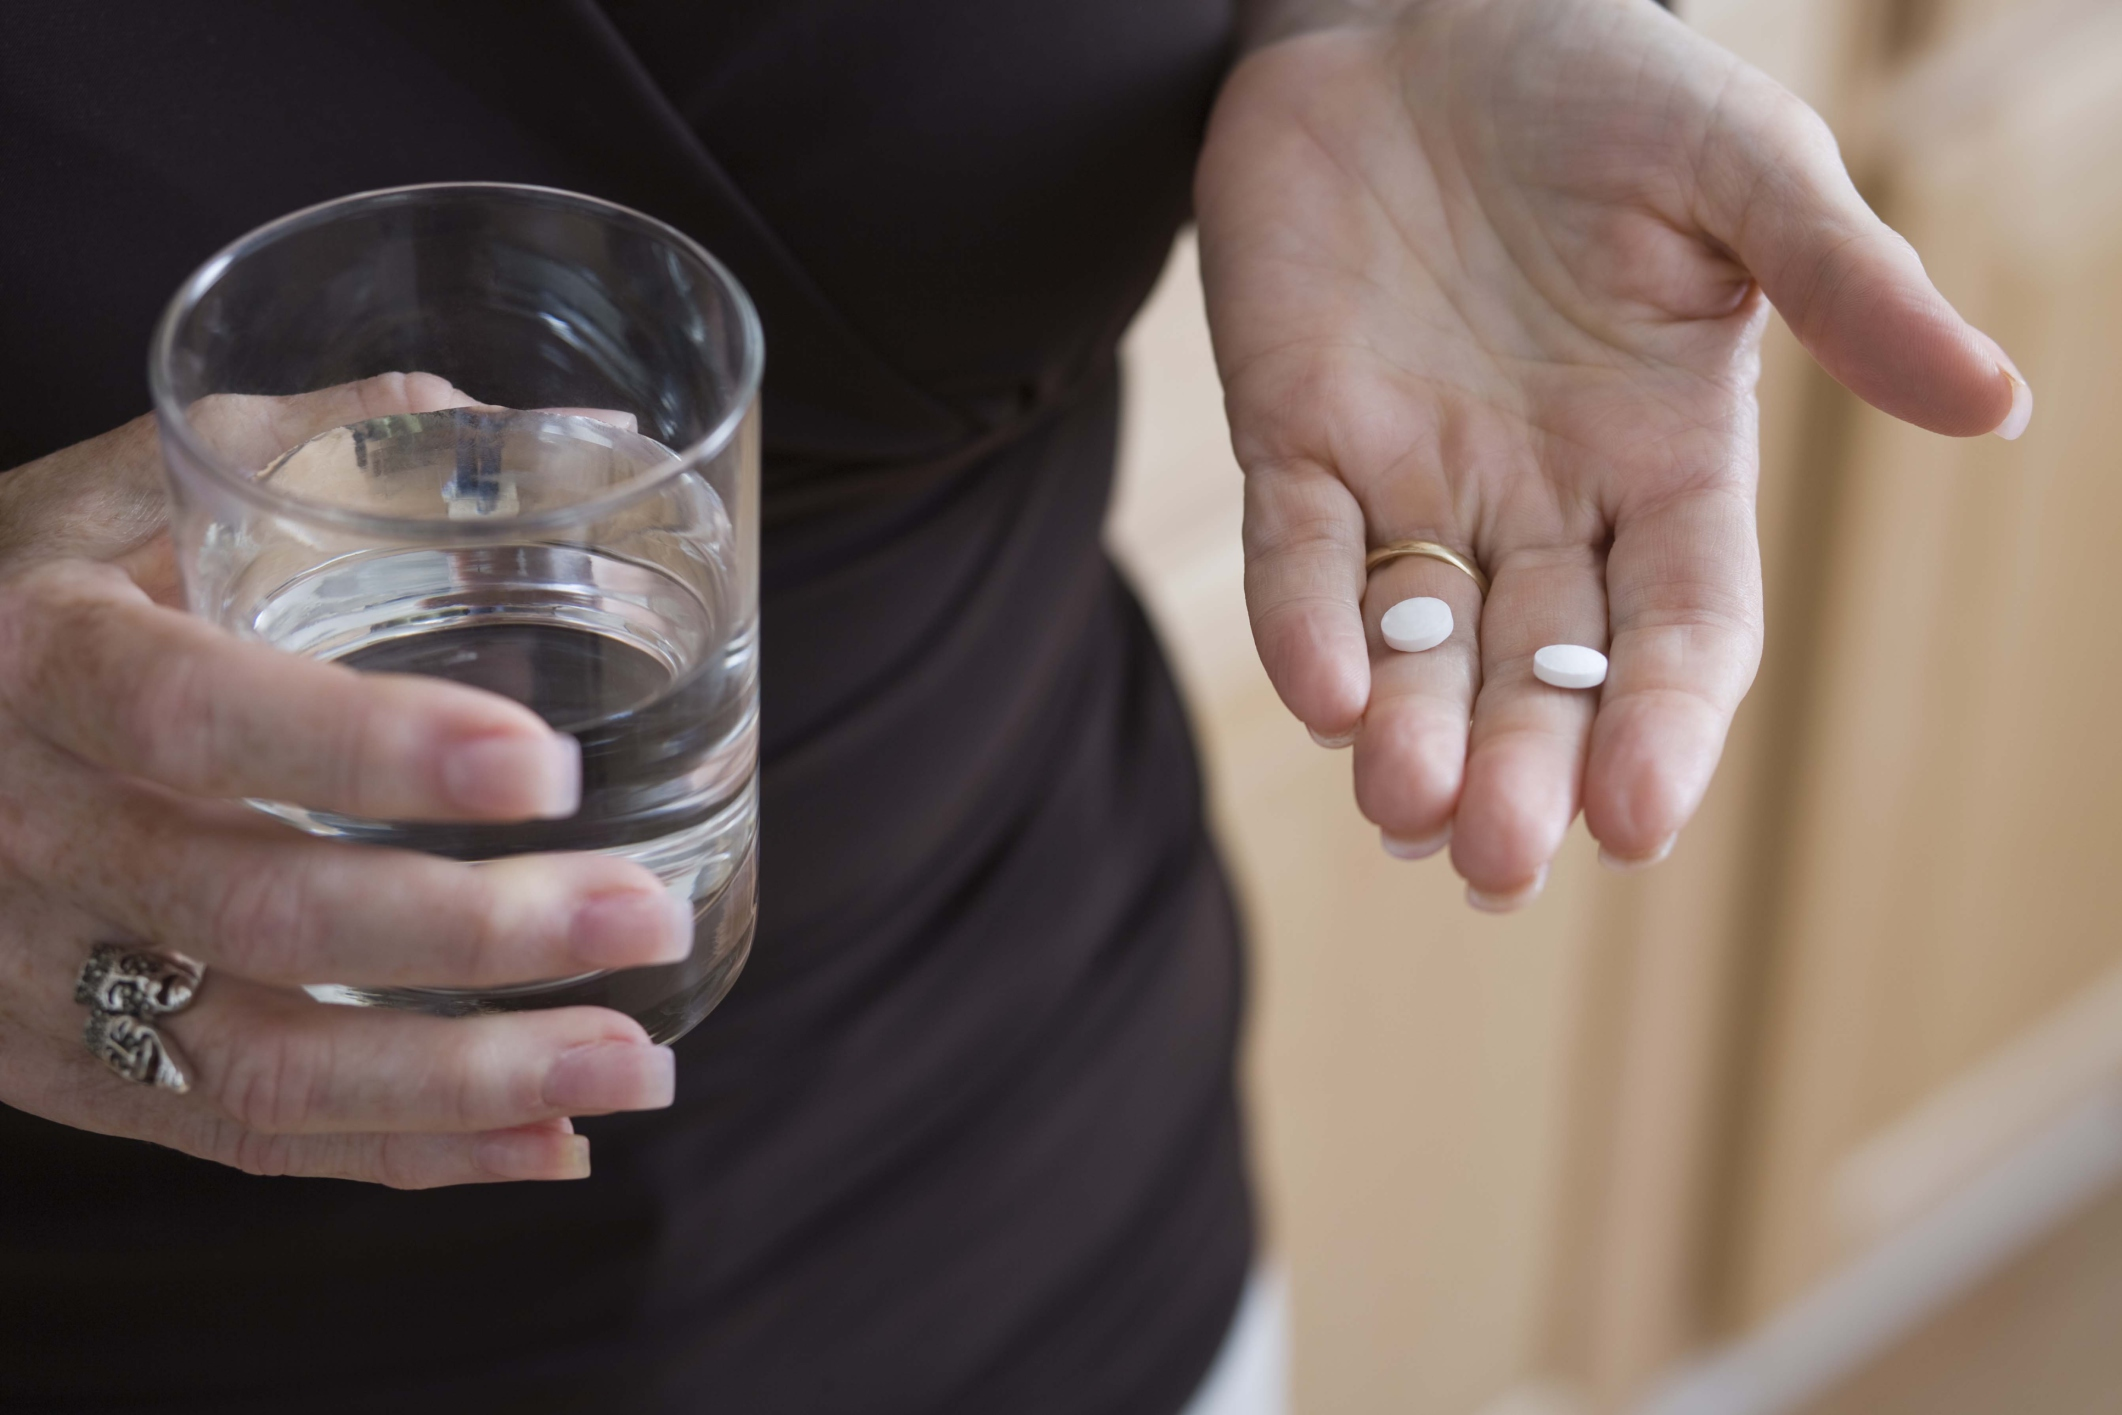 Study: Smokers, substance abusers more likely to get in trouble with painkillers